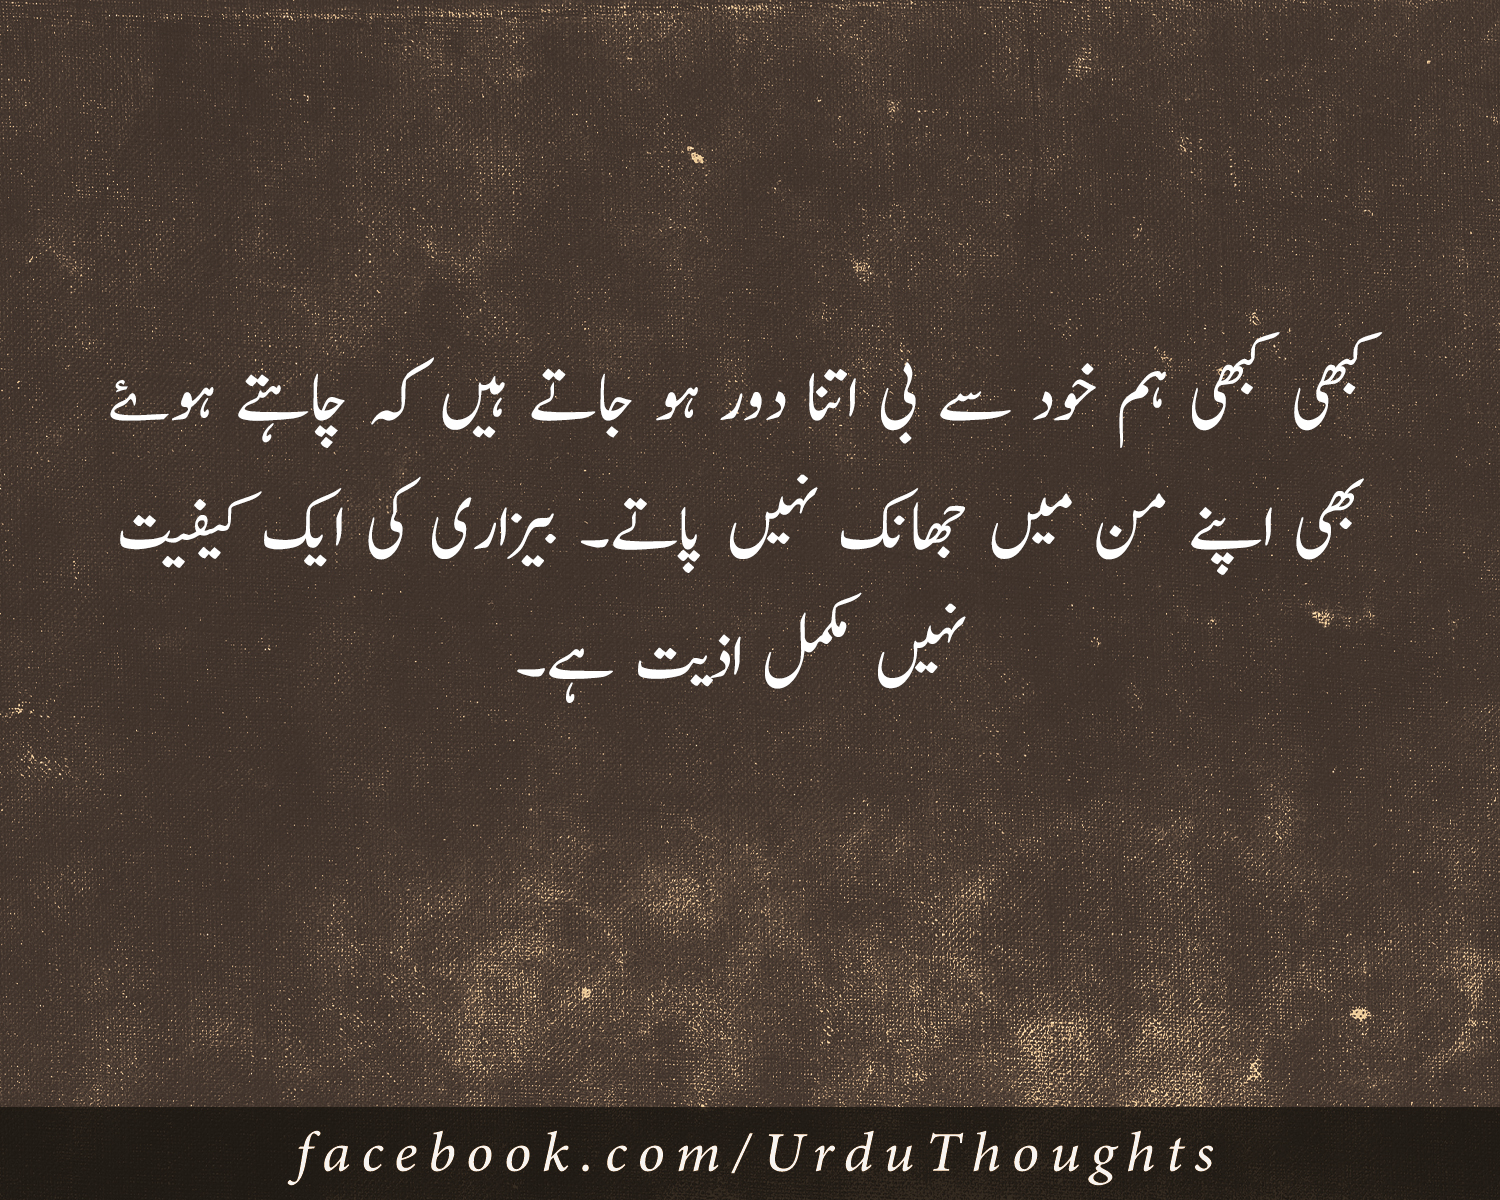 10 Urdu Quotes Images About Zindagi, Success and People ...